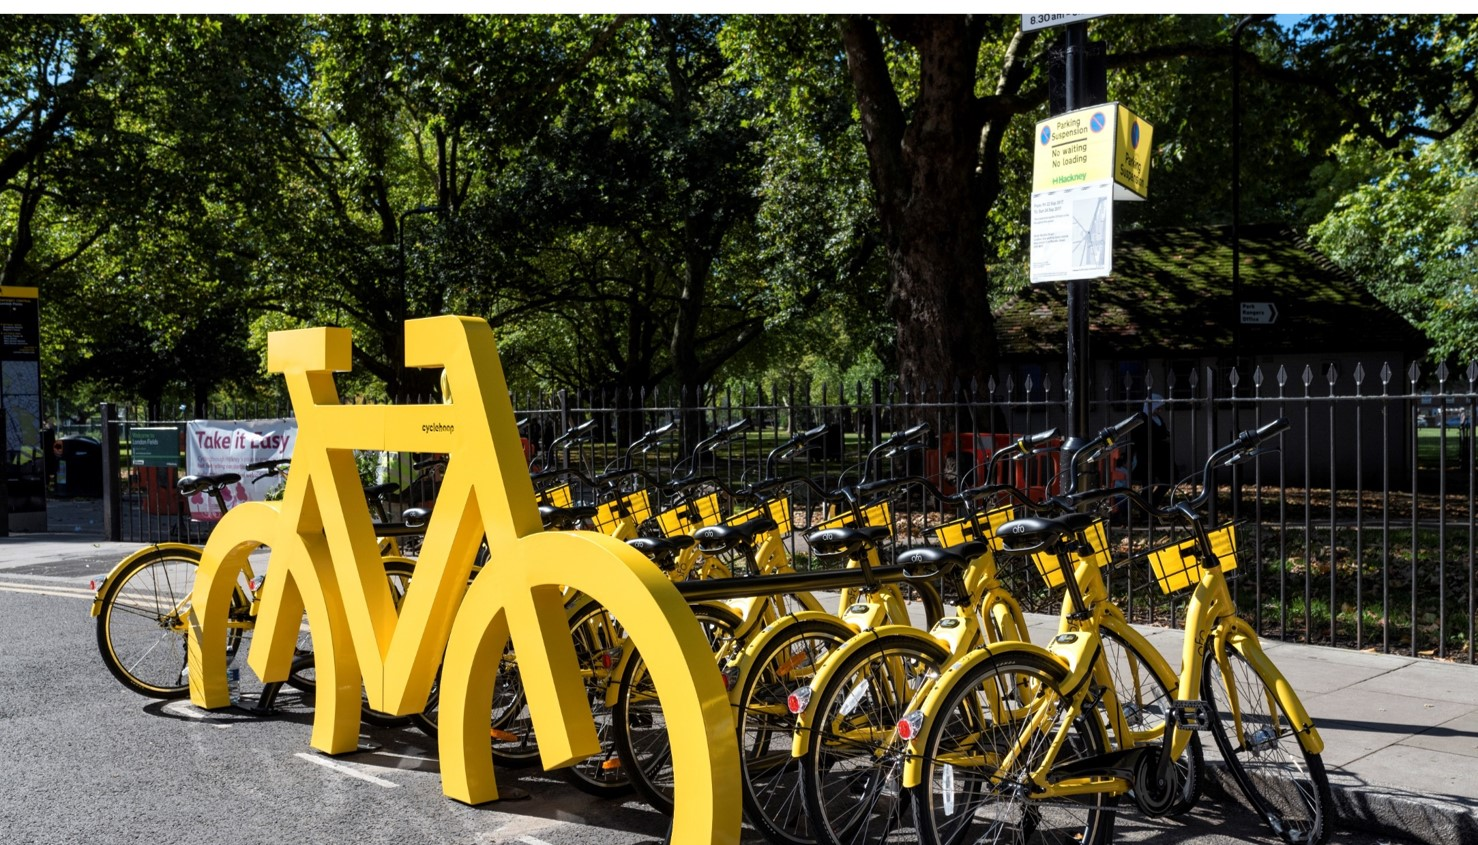 Ofo named as dockless bike provider in Richmond